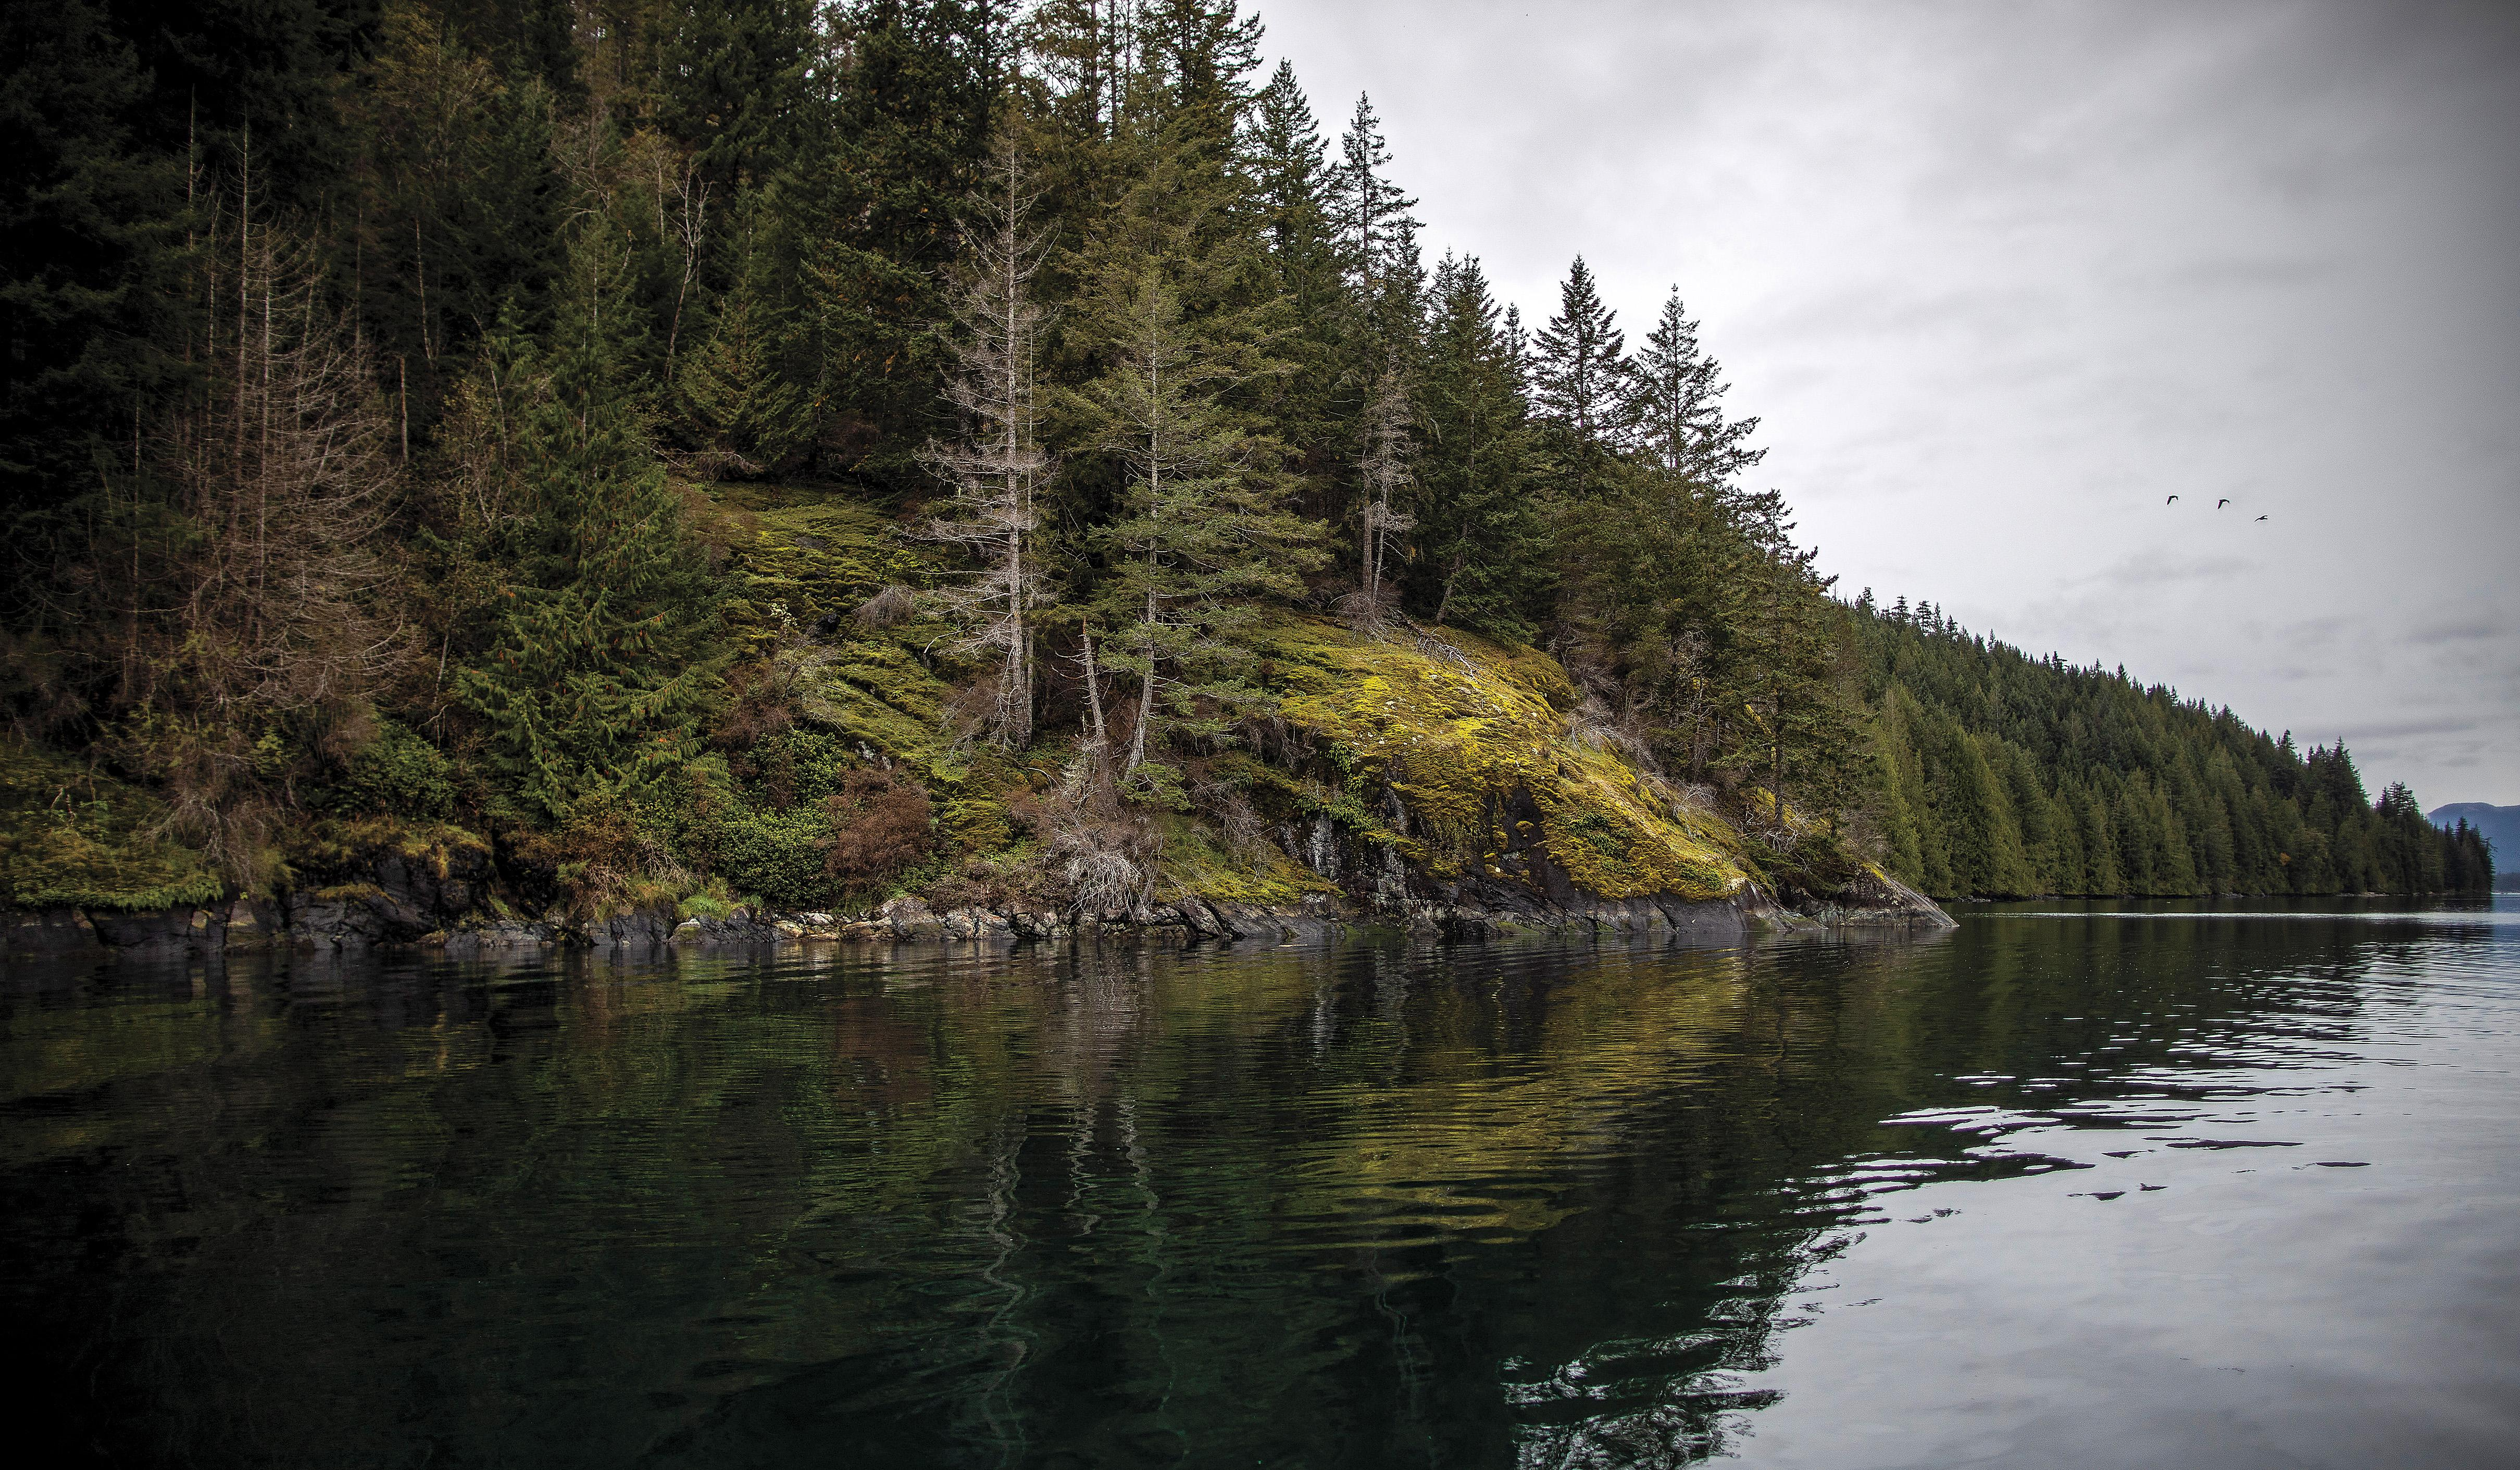 The coastline of Quadra Island in British Columbia. Some scientists believe that prehistoric humans spent thousands of years in the region.